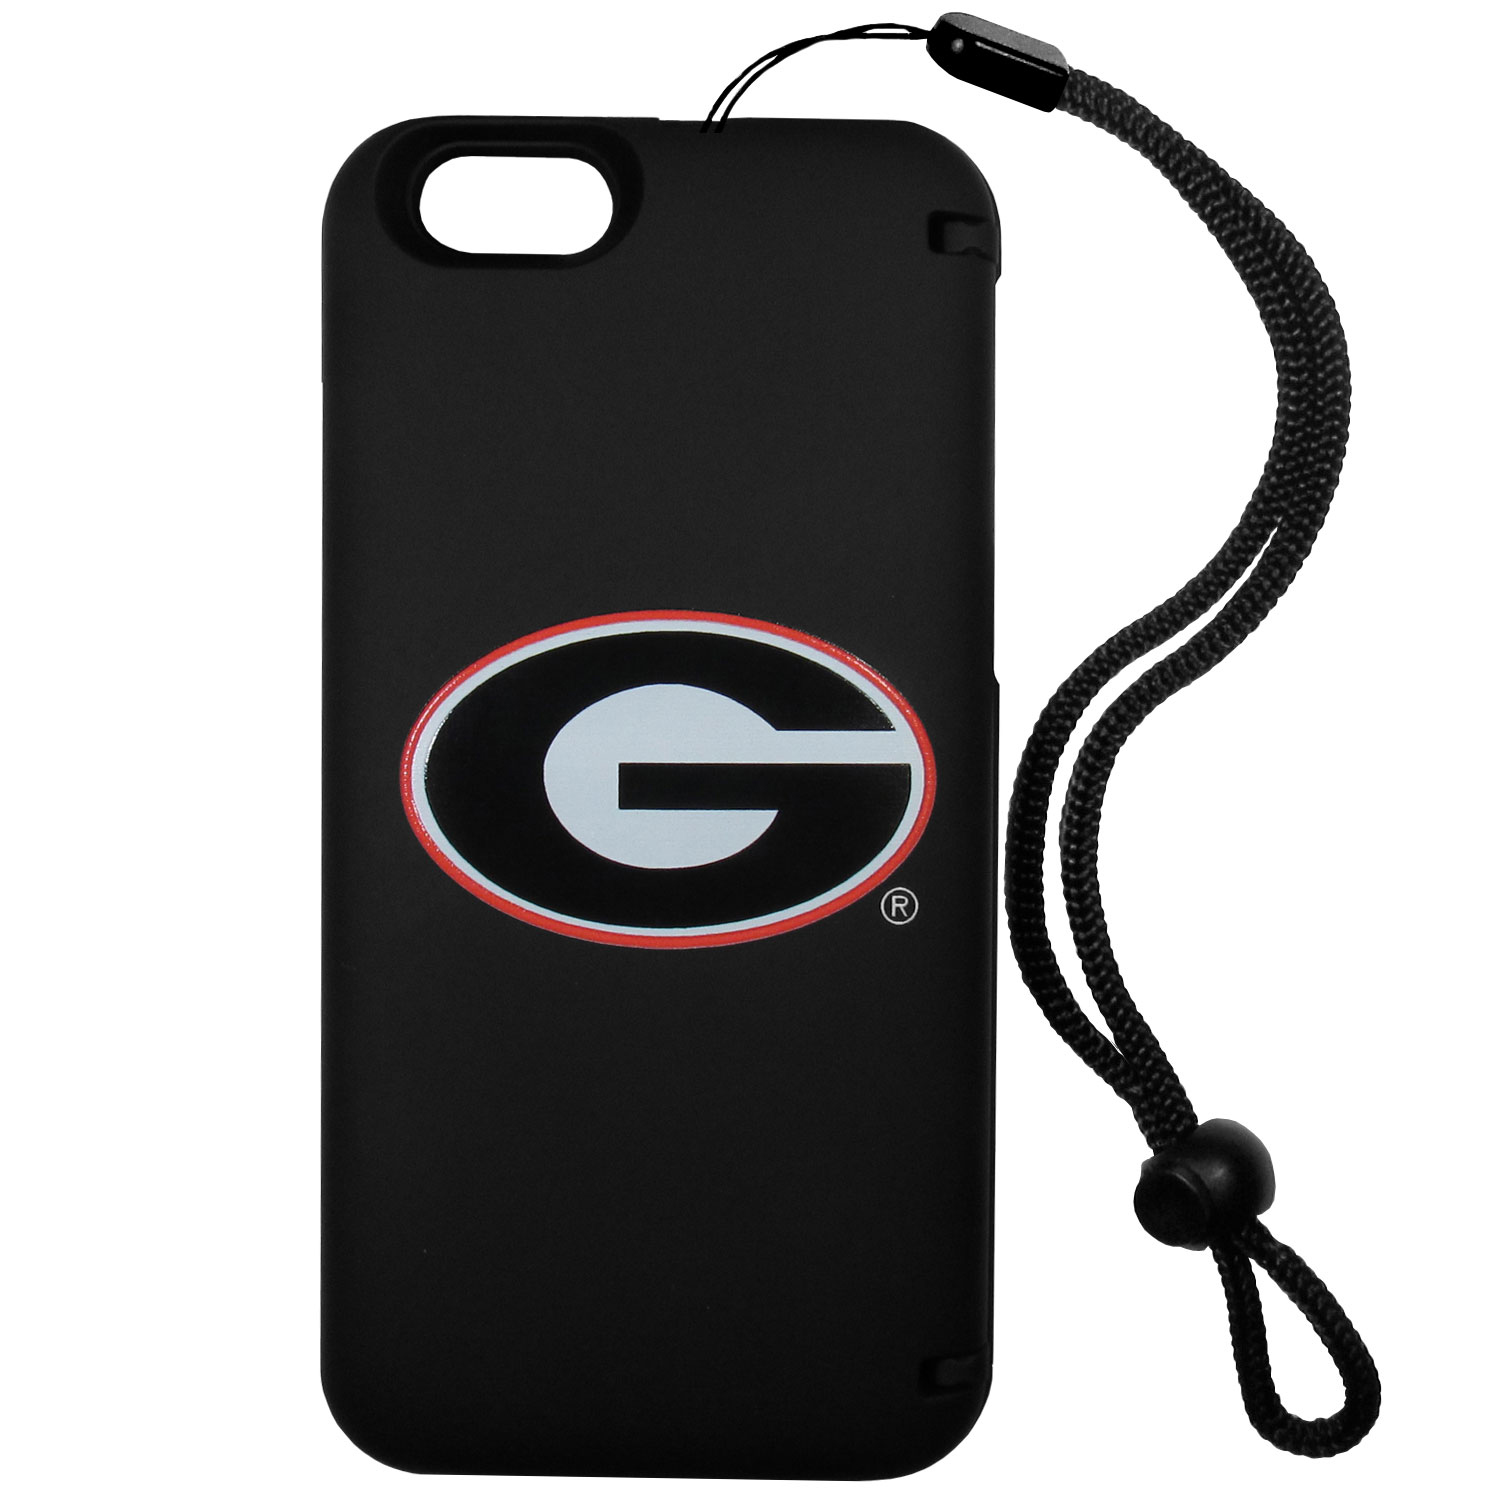 Georgia Bulldogs iPhone 6 Everything Case - This case really does have everything but the kitchen sink! The hidden compartment lets you keep your cards, money and tickets to the big game safe and secure and has a compact mirror so you can make sure your game face is ready to go. It also comes with a kickstand to make chatting and watching videos a breeze. The wrist strap allows you to travel with ease with your everything case. If that's not enough, it also comes with the Georgia Bulldogs logo printed in expert detail on the front.